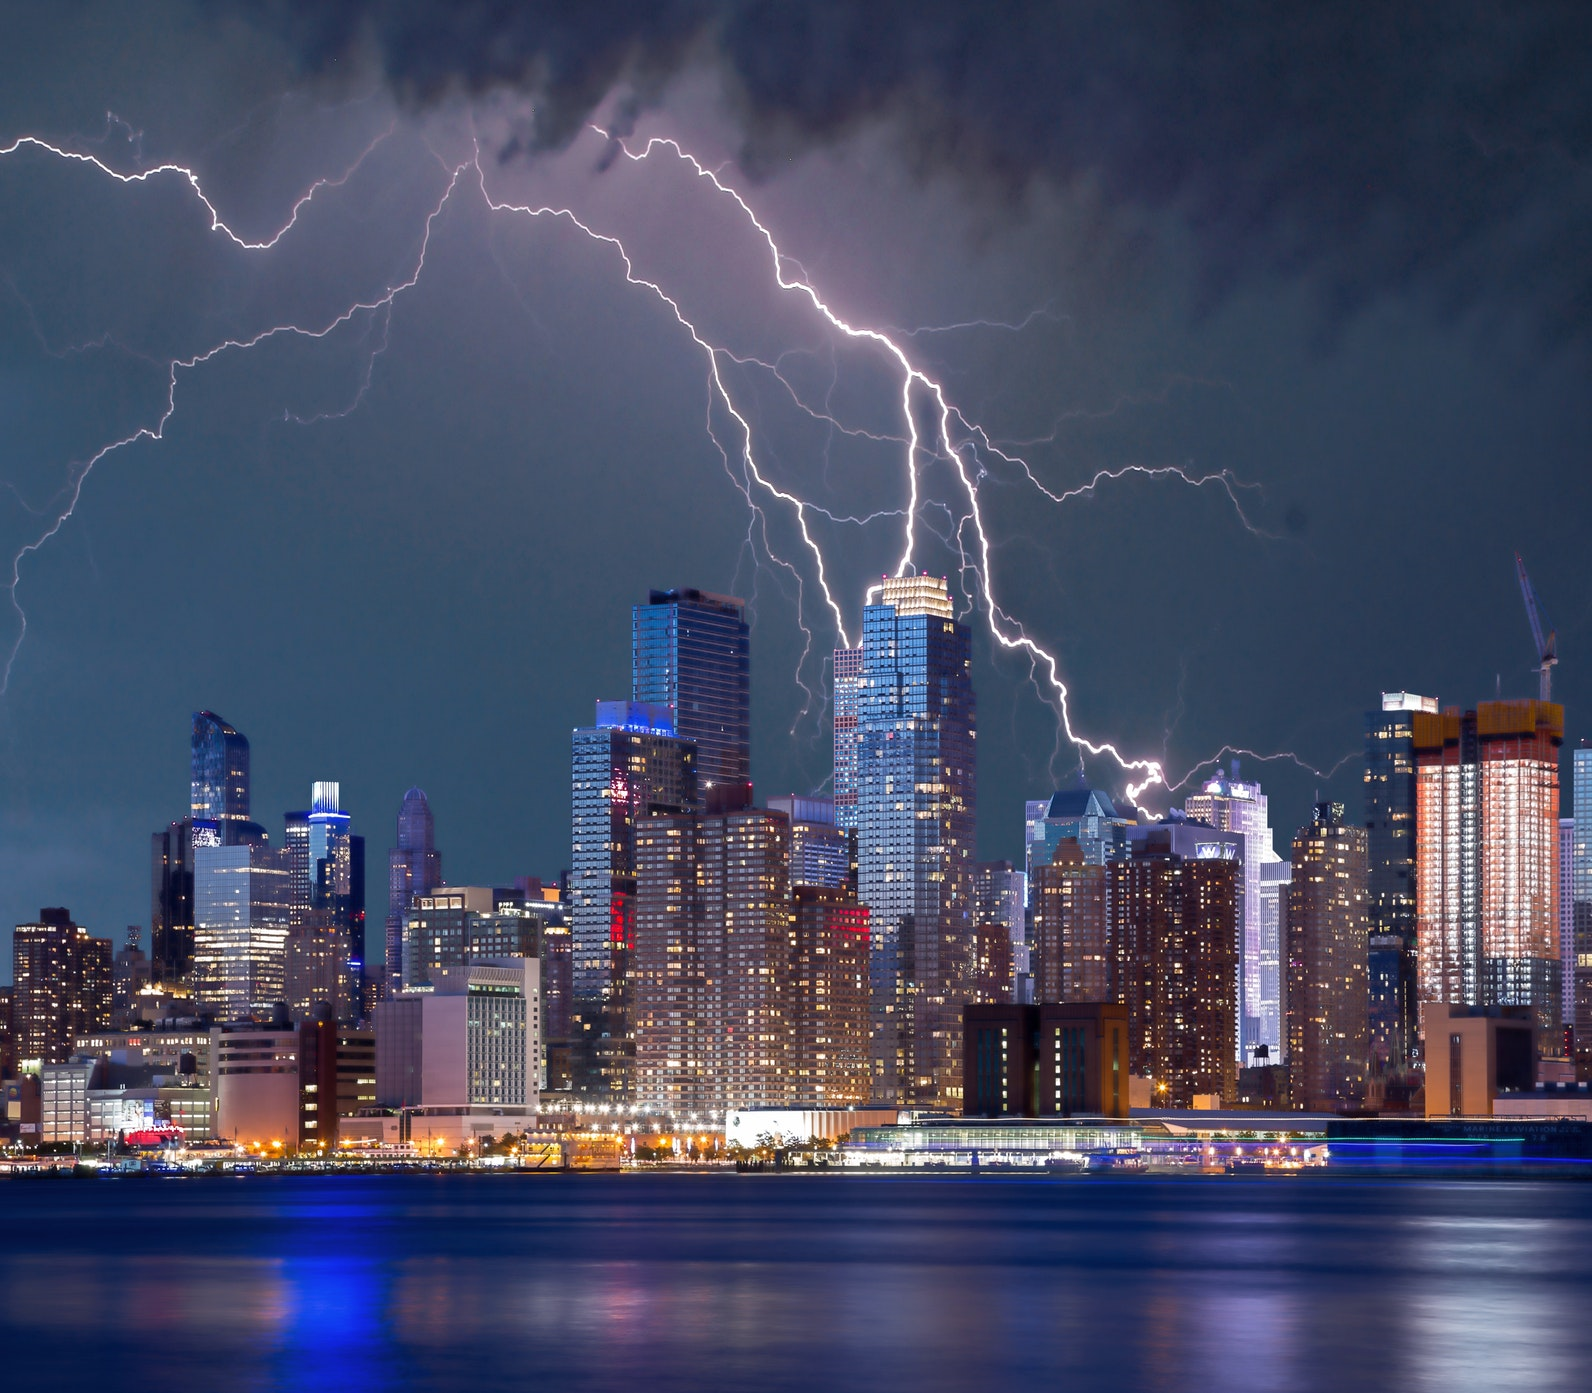 12 ways small businesses can protect their data this storm season